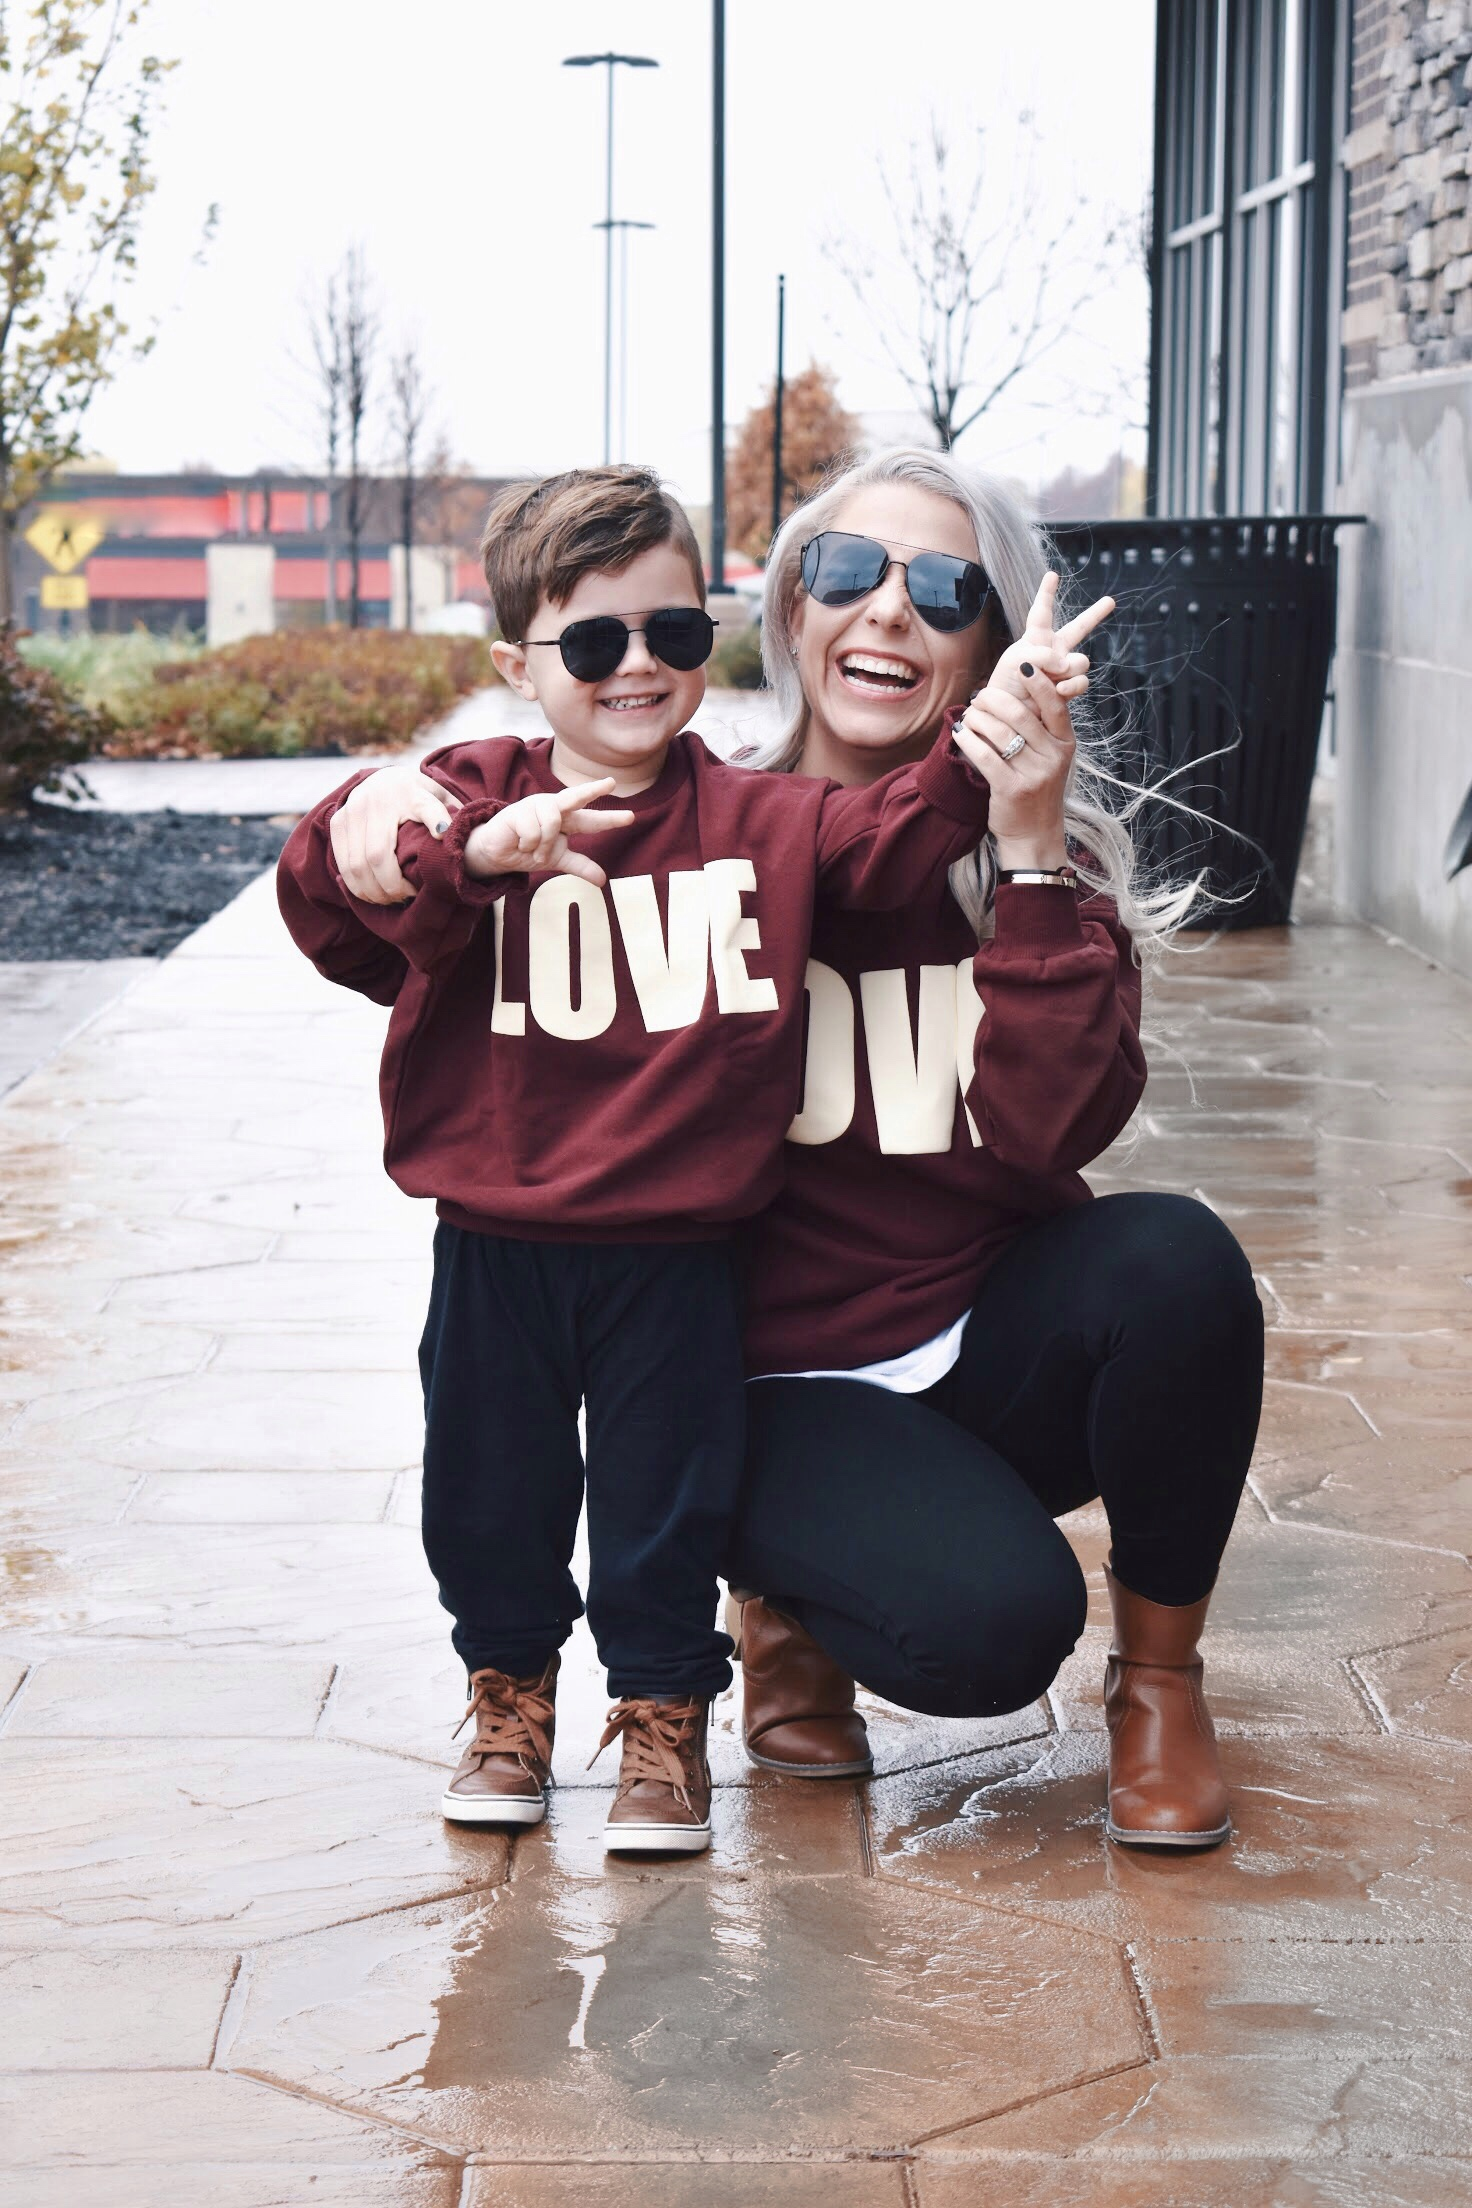 Mother Son Matching Outfits - Twinning Outfits for Boy Moms! You won't believe the cuteness! Try these cute matching outfits for mommy and son for your next adventure with your little man! Blogger Tricia Nibarger of COVET by tricia showcases stylish boy mom matching outfits with her son. Plus, an exclusive discount code to save on PatPat matching outfits! #Twinning #BoyMom #FashionBlogger #MommyandMe